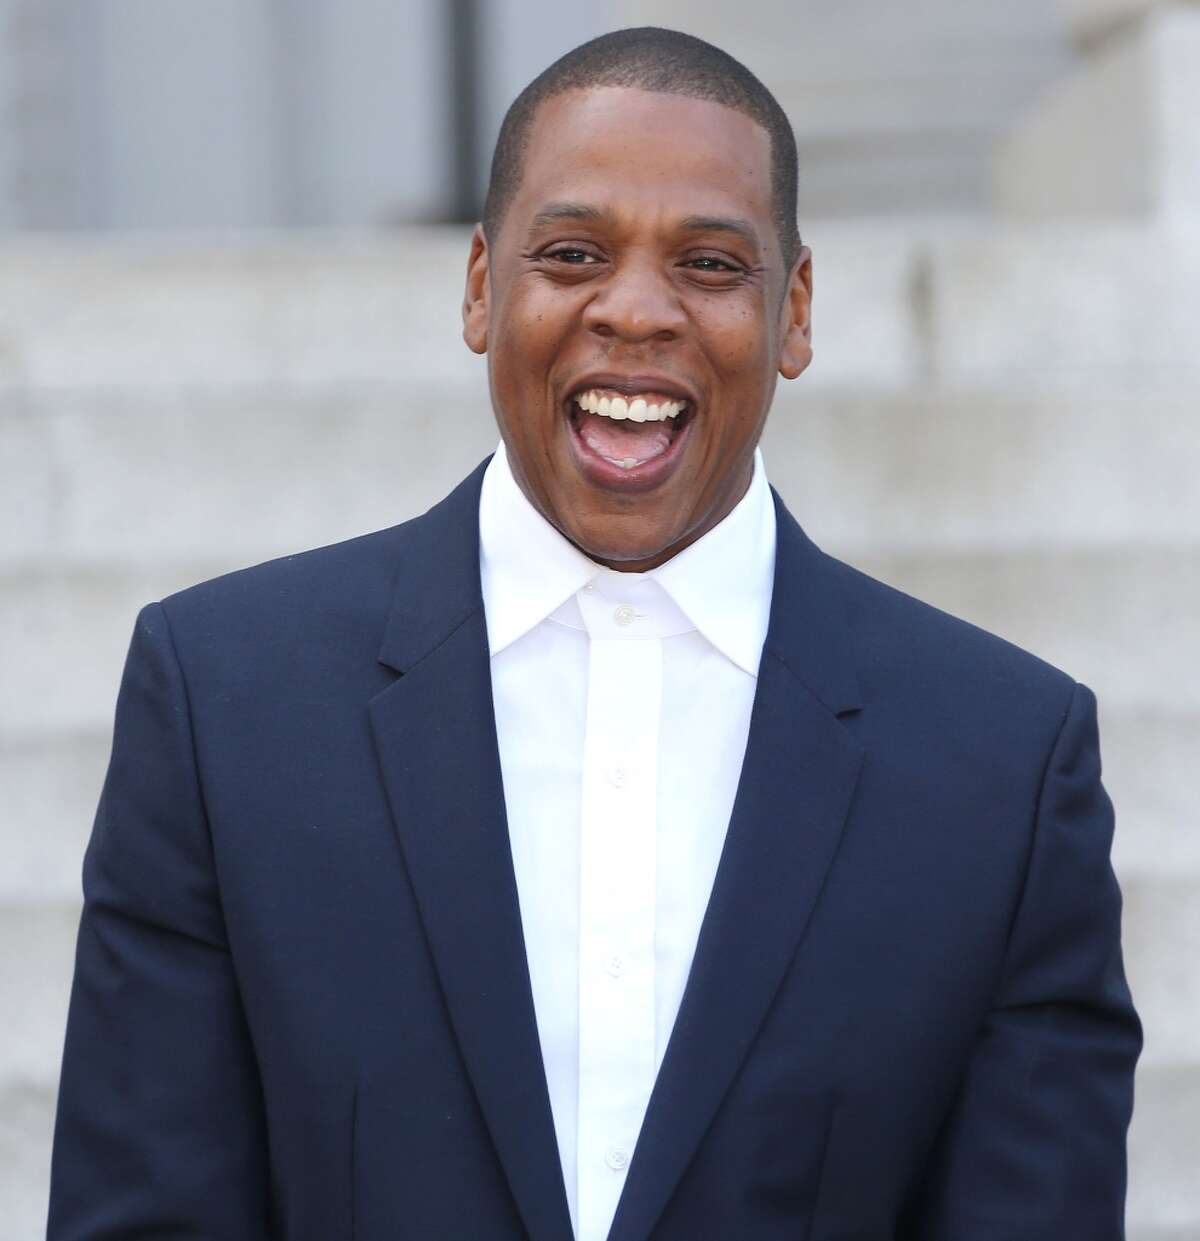 While Beyonce and Blue Ivy are playing with the expensive Barbie, Jay Z has something else to occupy his time. The rapper reportedly bought a race horse named California Chrome for $55 million.